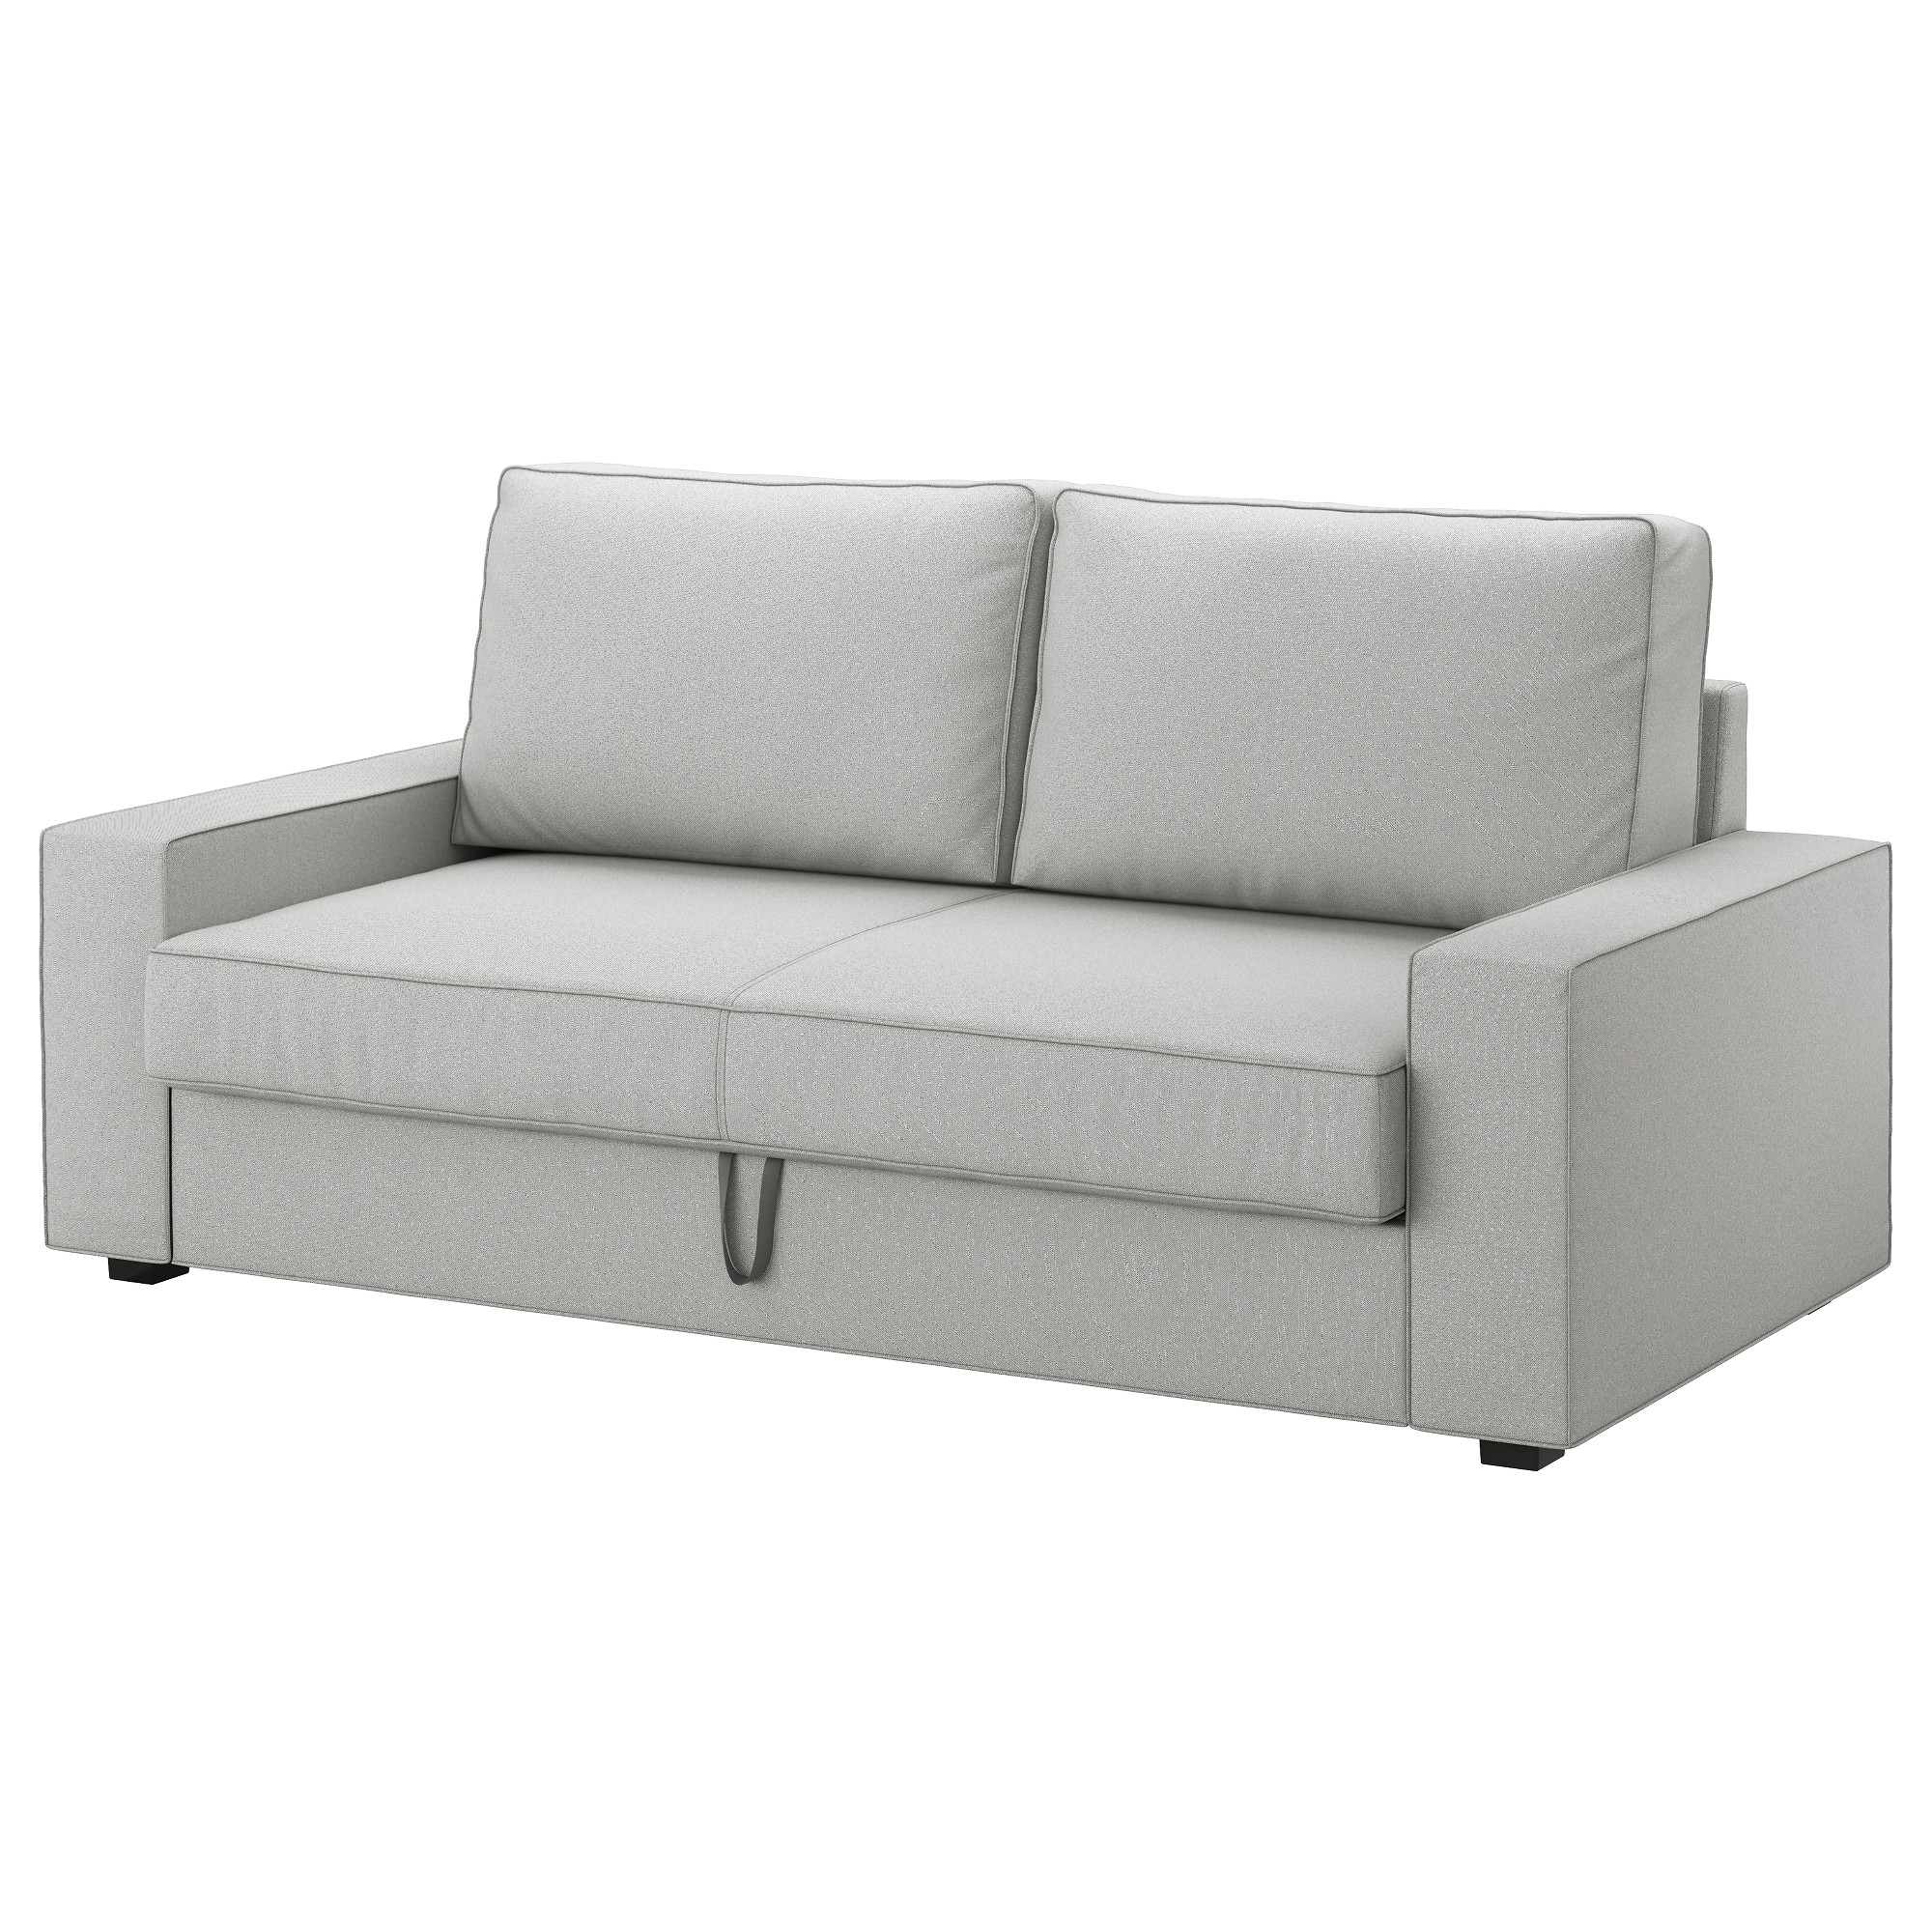 Schlafsofa jugendzimmer ikea for Bettsofa jugendzimmer